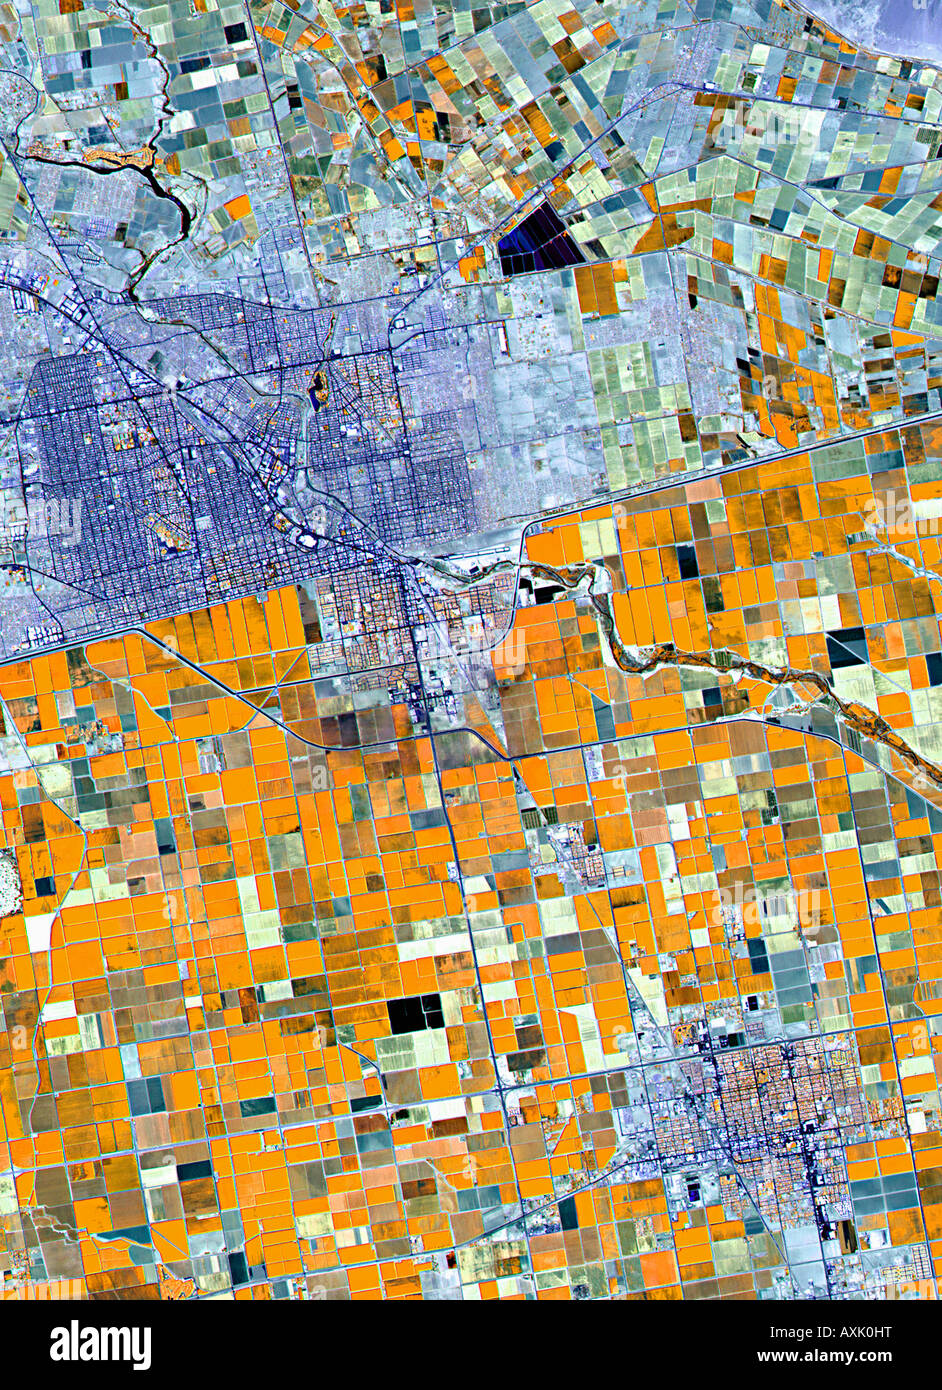 Image satellite de l'Allemagne des terres agricoles Photo Stock